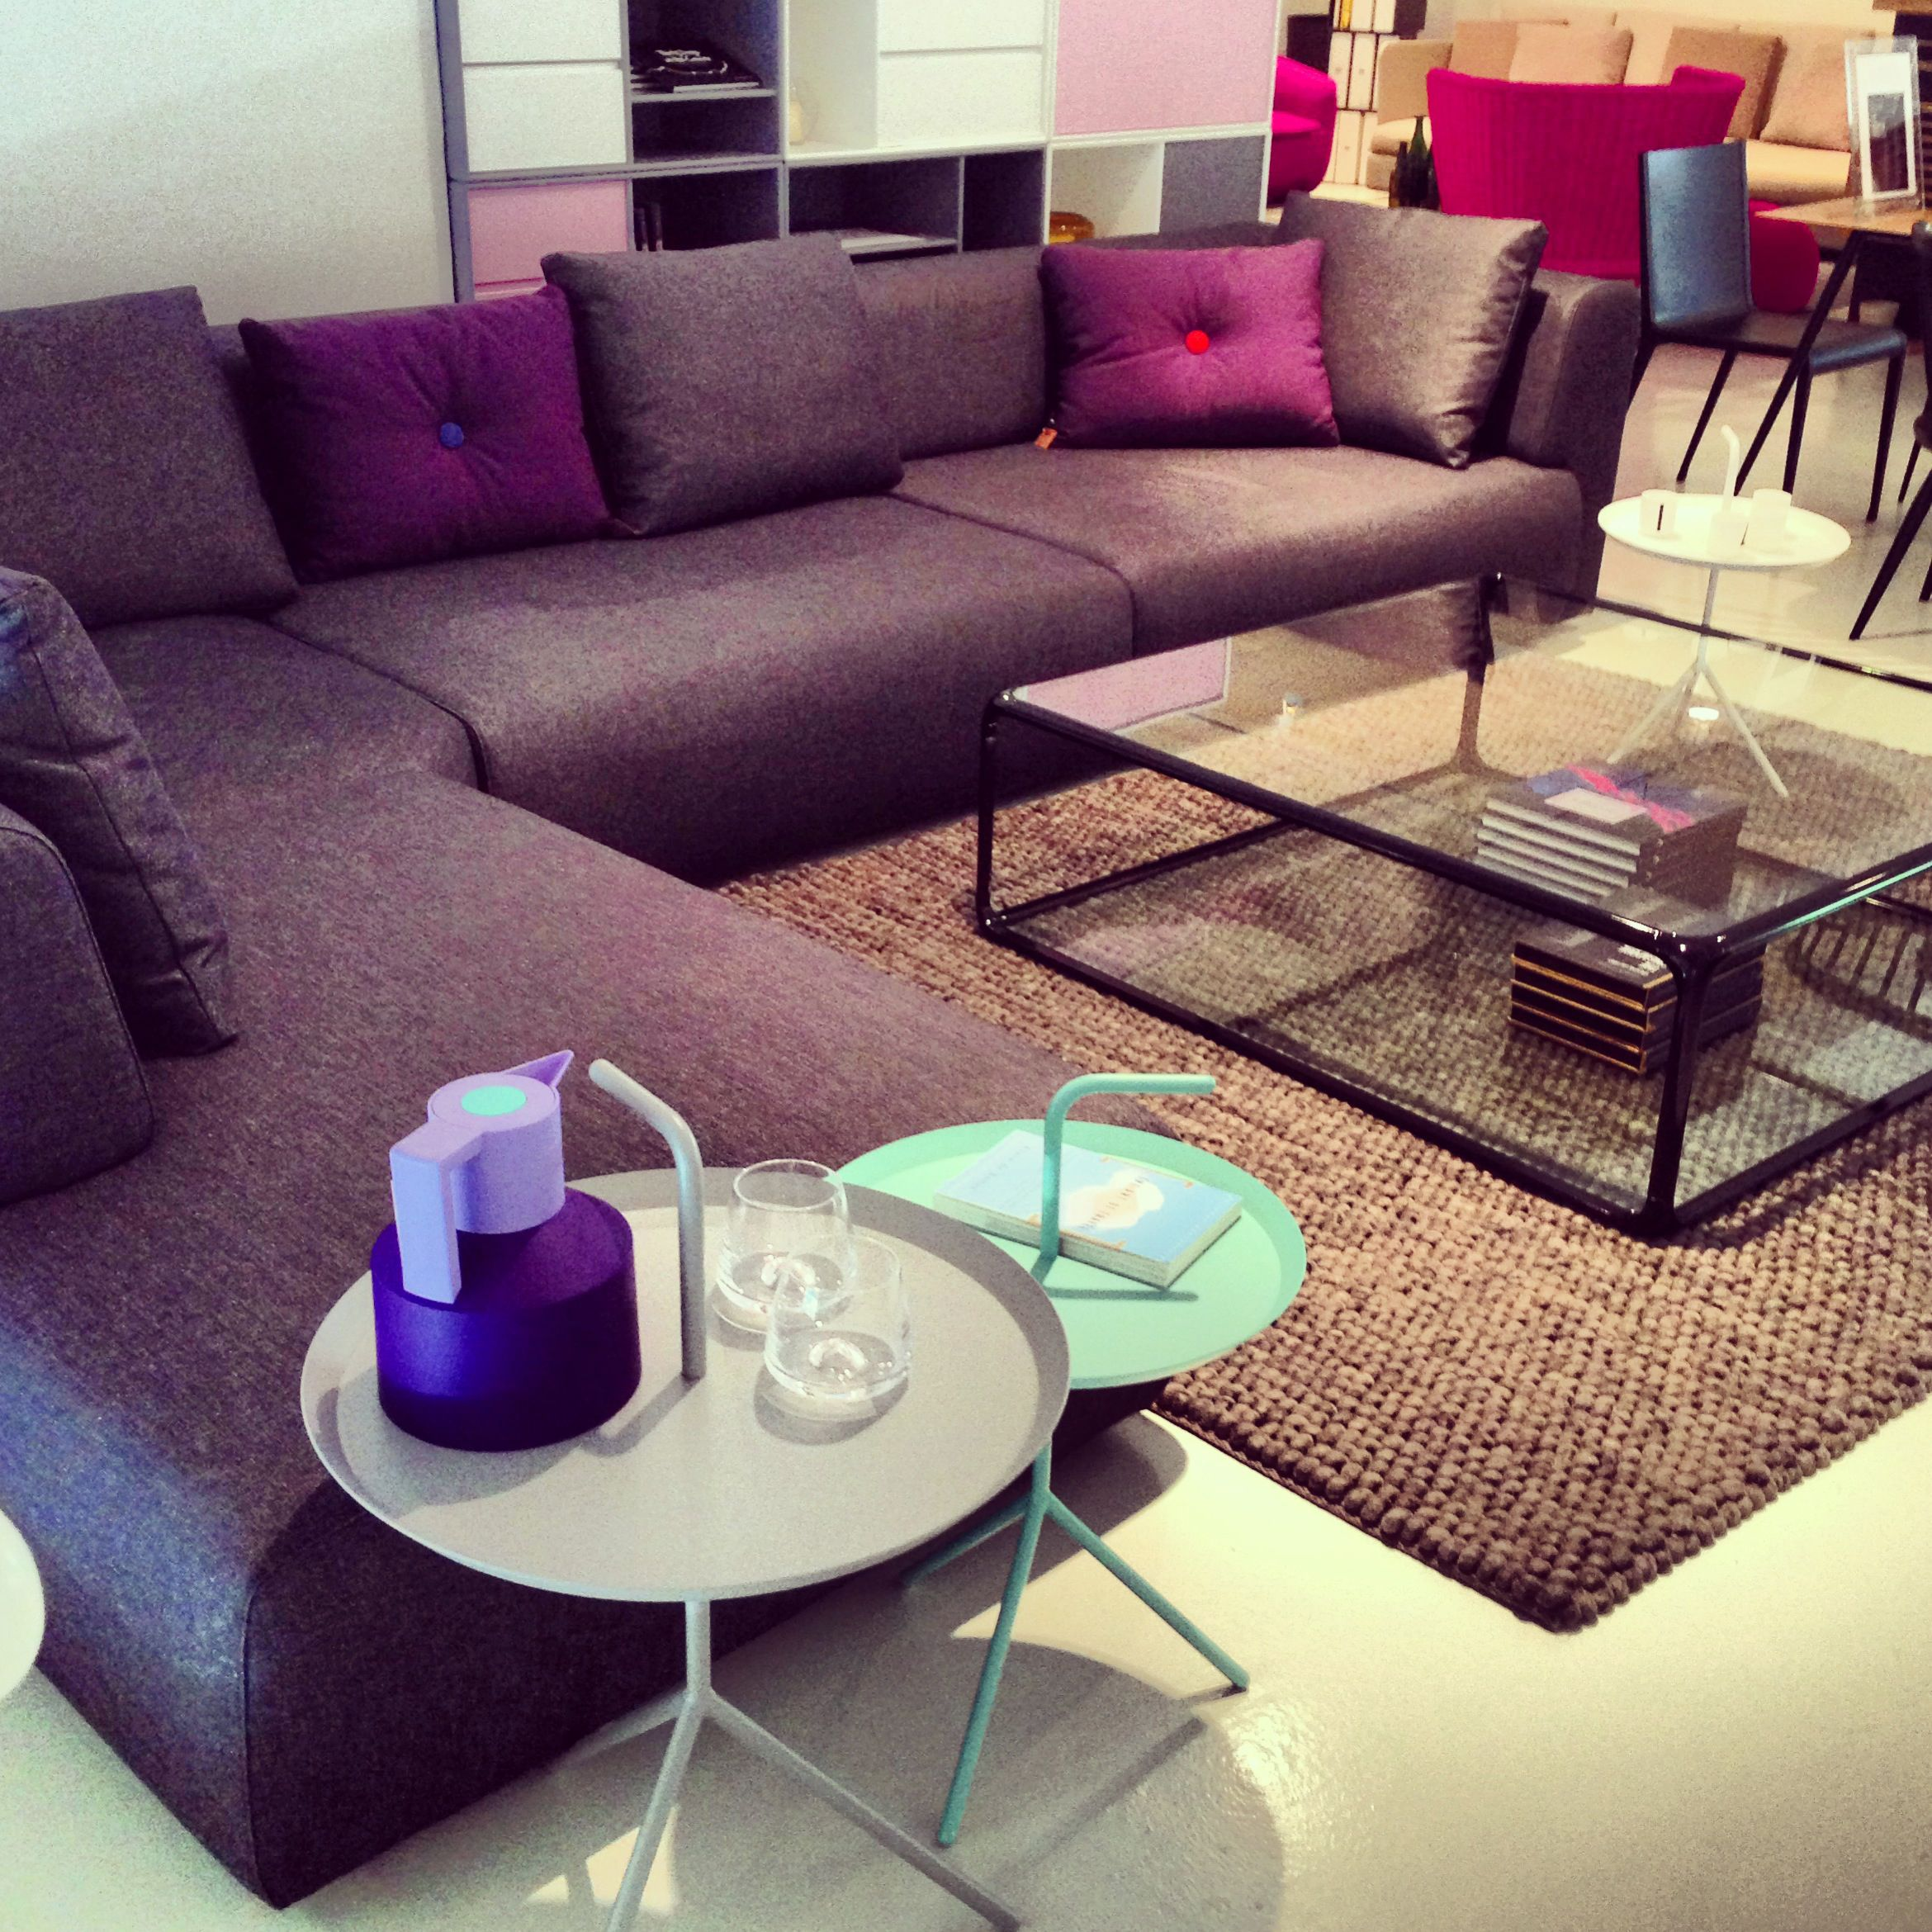 Dream Interiors Showroom Level 2 Carpet Cushions And Side Tables From Hay L Shaped Sofa Coffee Table Sancal Thermos Gl Cups Normann